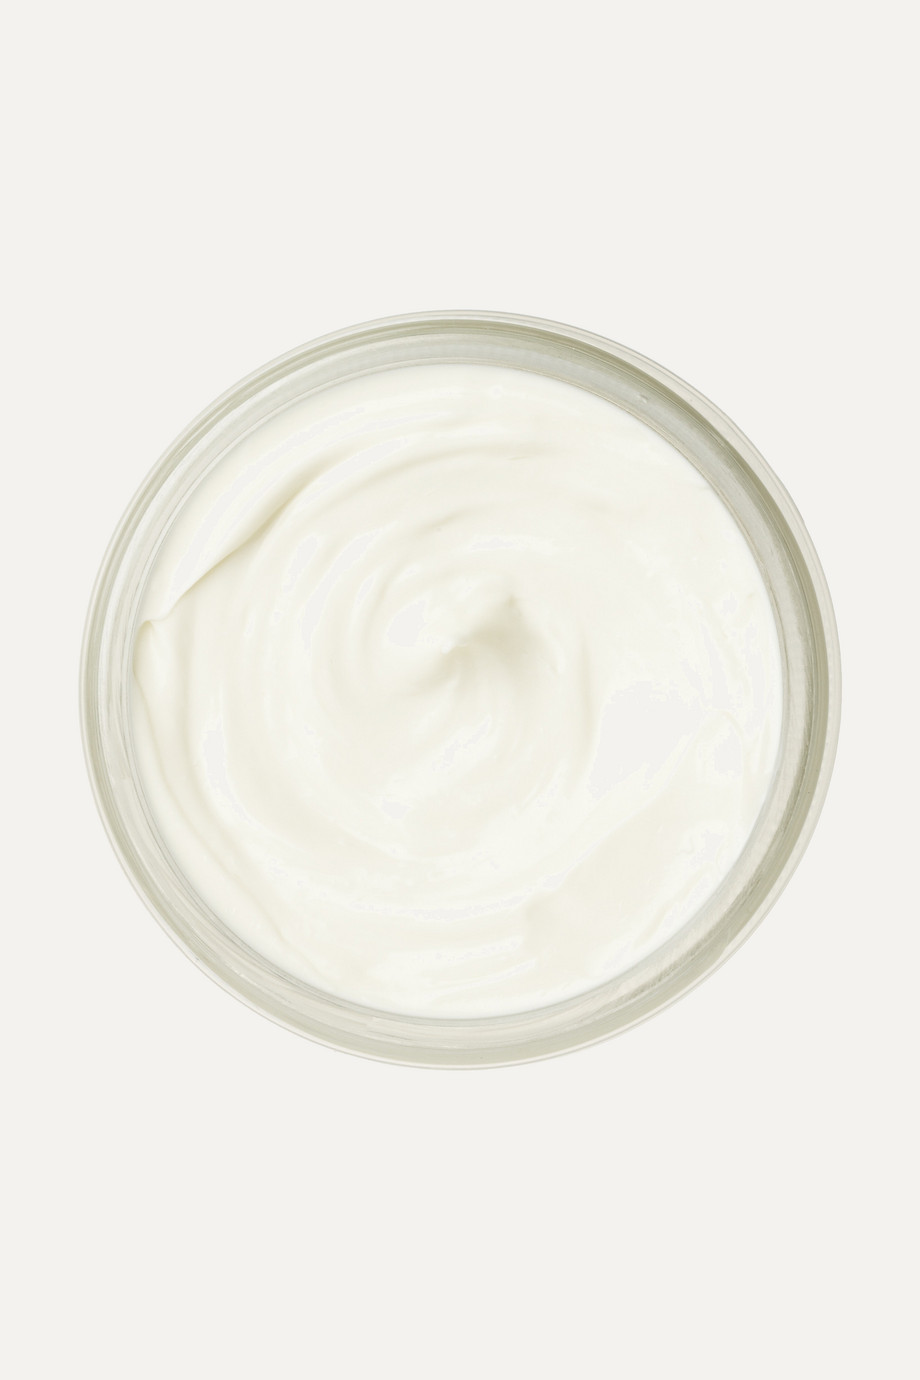 Susanne Kaufmann Body Butter, 200ml